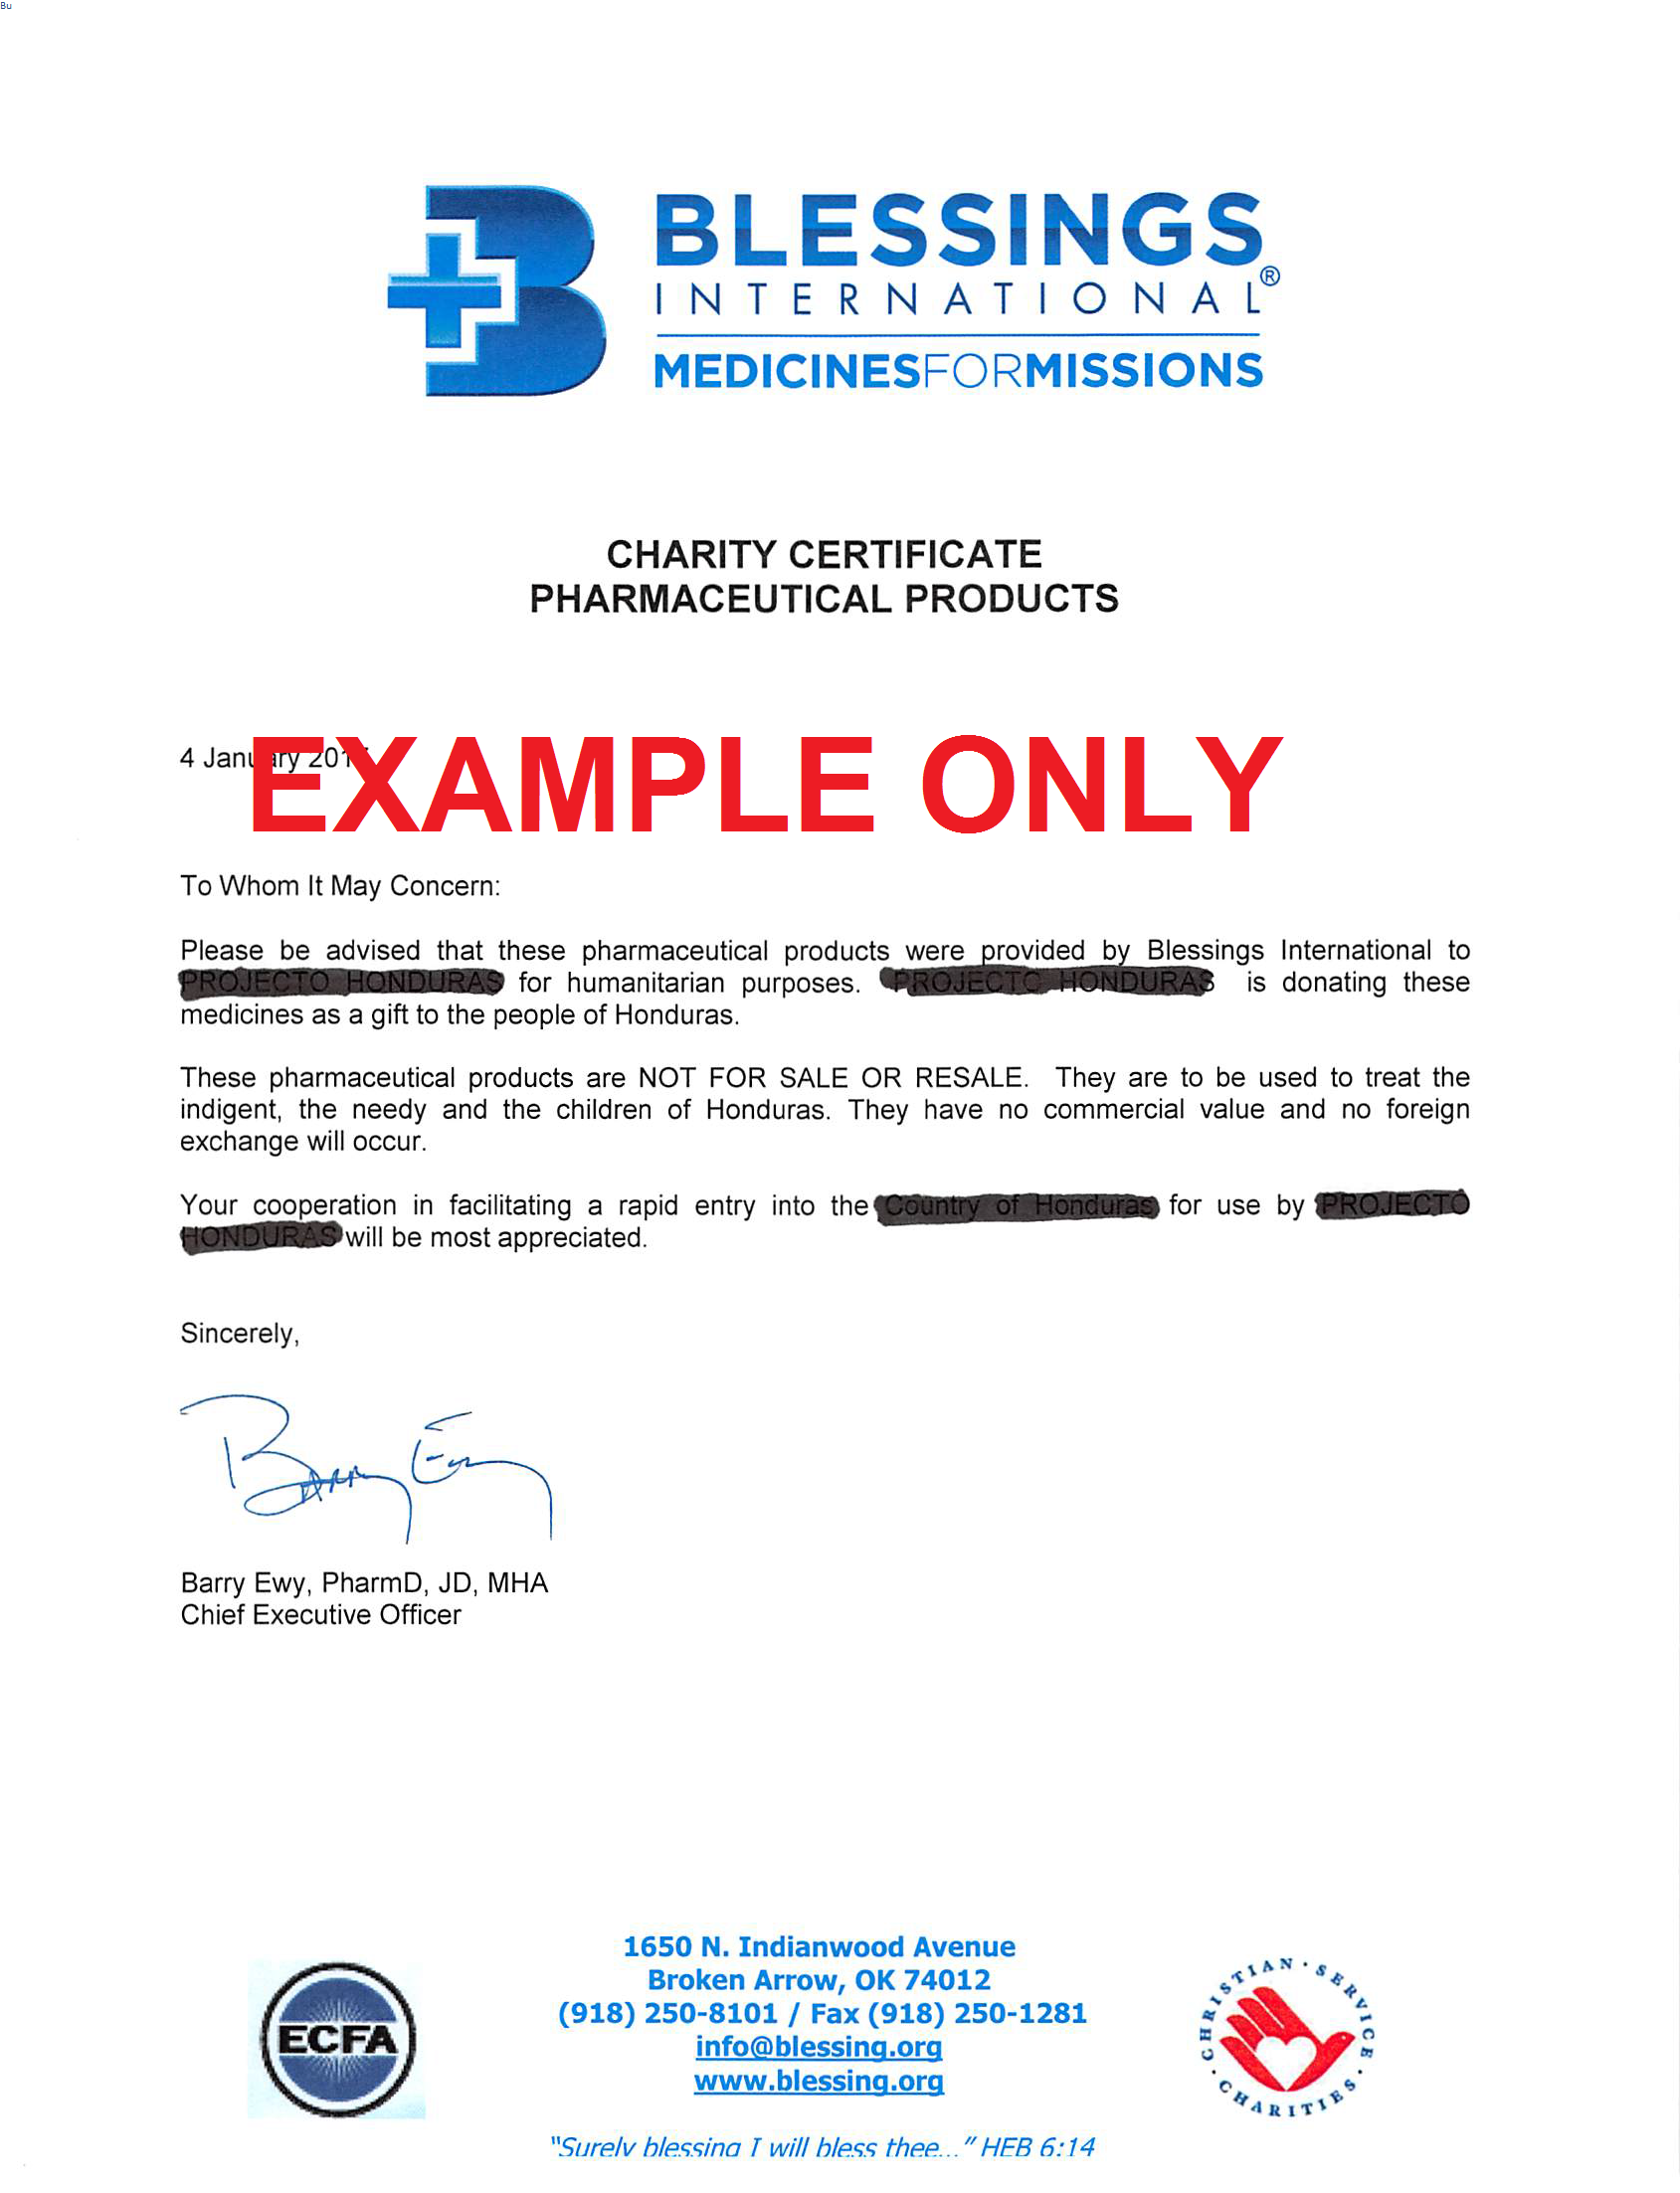 GIFT CERTIFICATE OF MEDS example